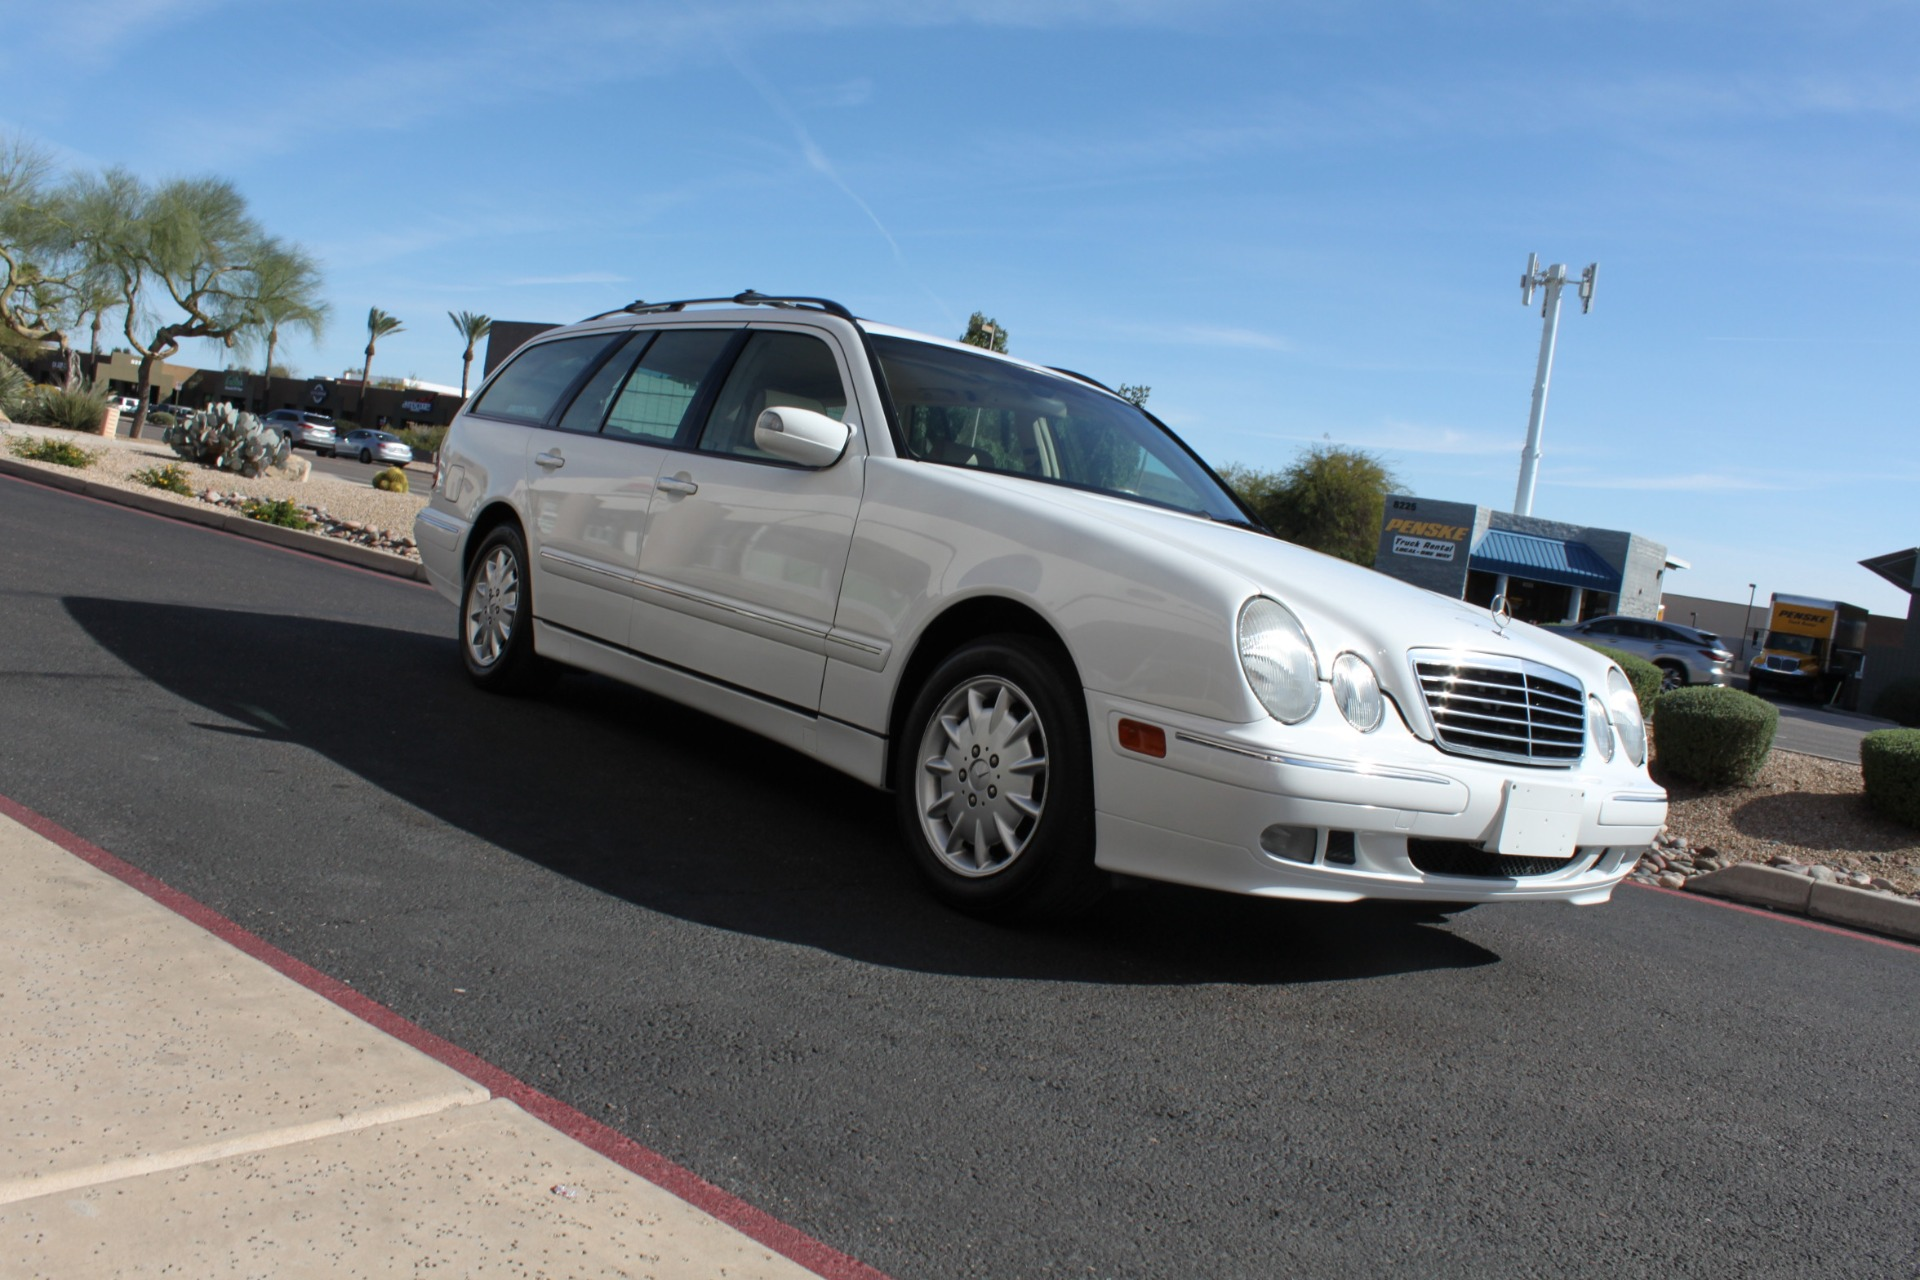 Used-2000-Mercedes-Benz-E-Class-Wagon-LS400